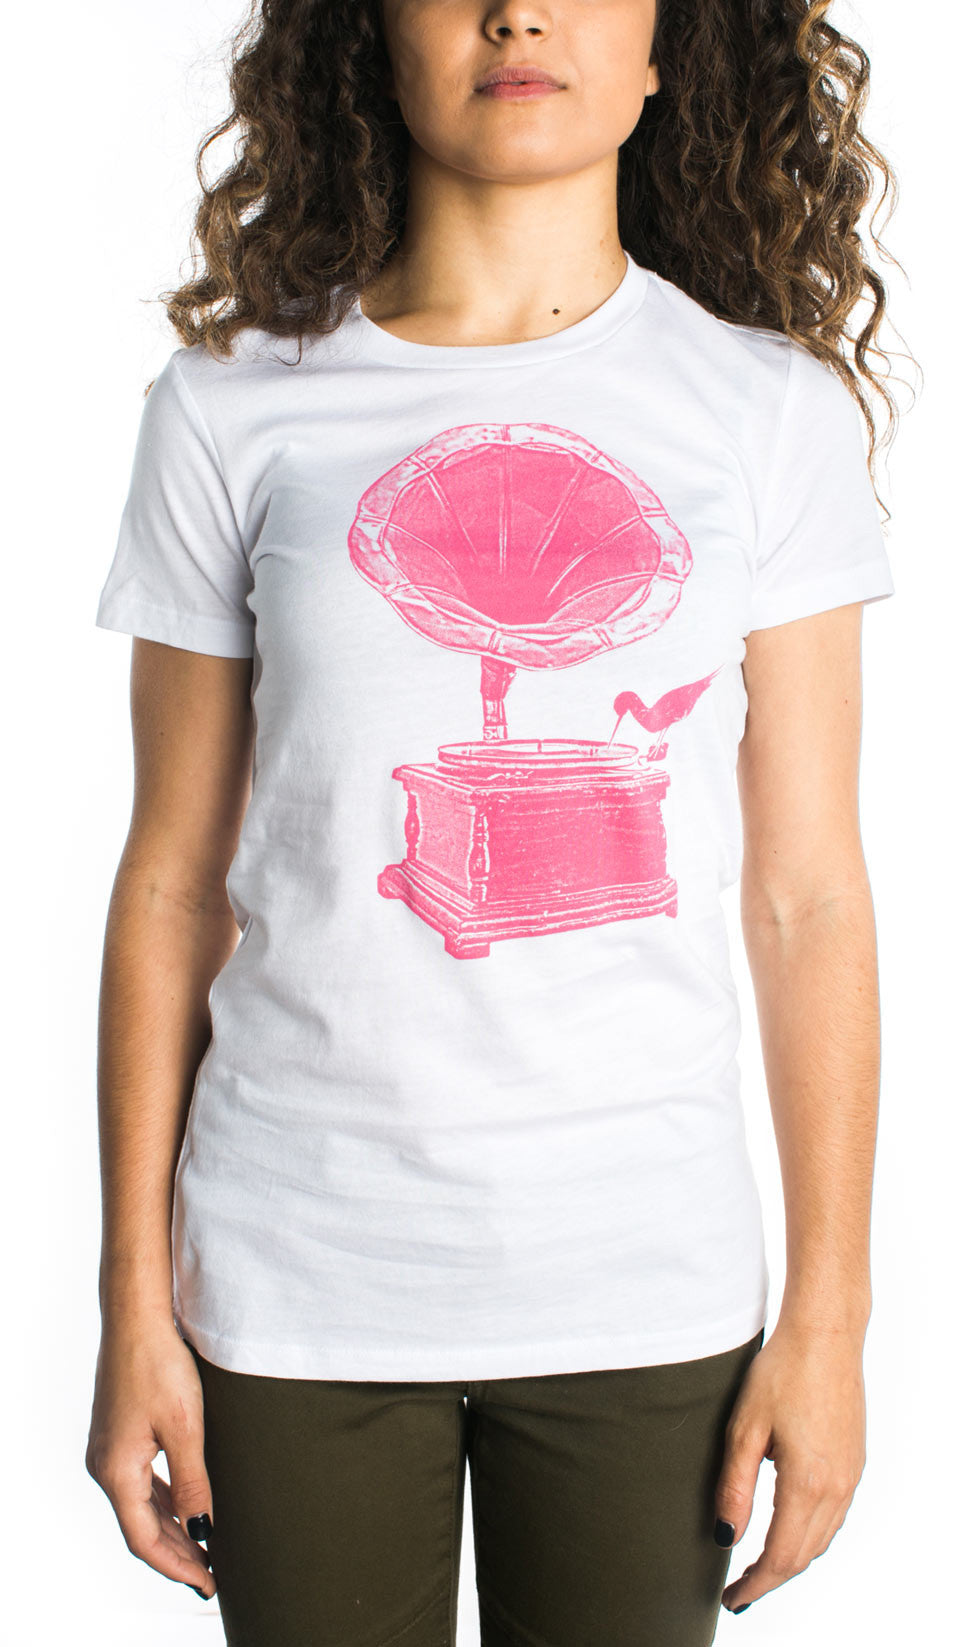 Tees Arka Someday Pink Floral Embroidery Top Gramophone Urban Streetwear